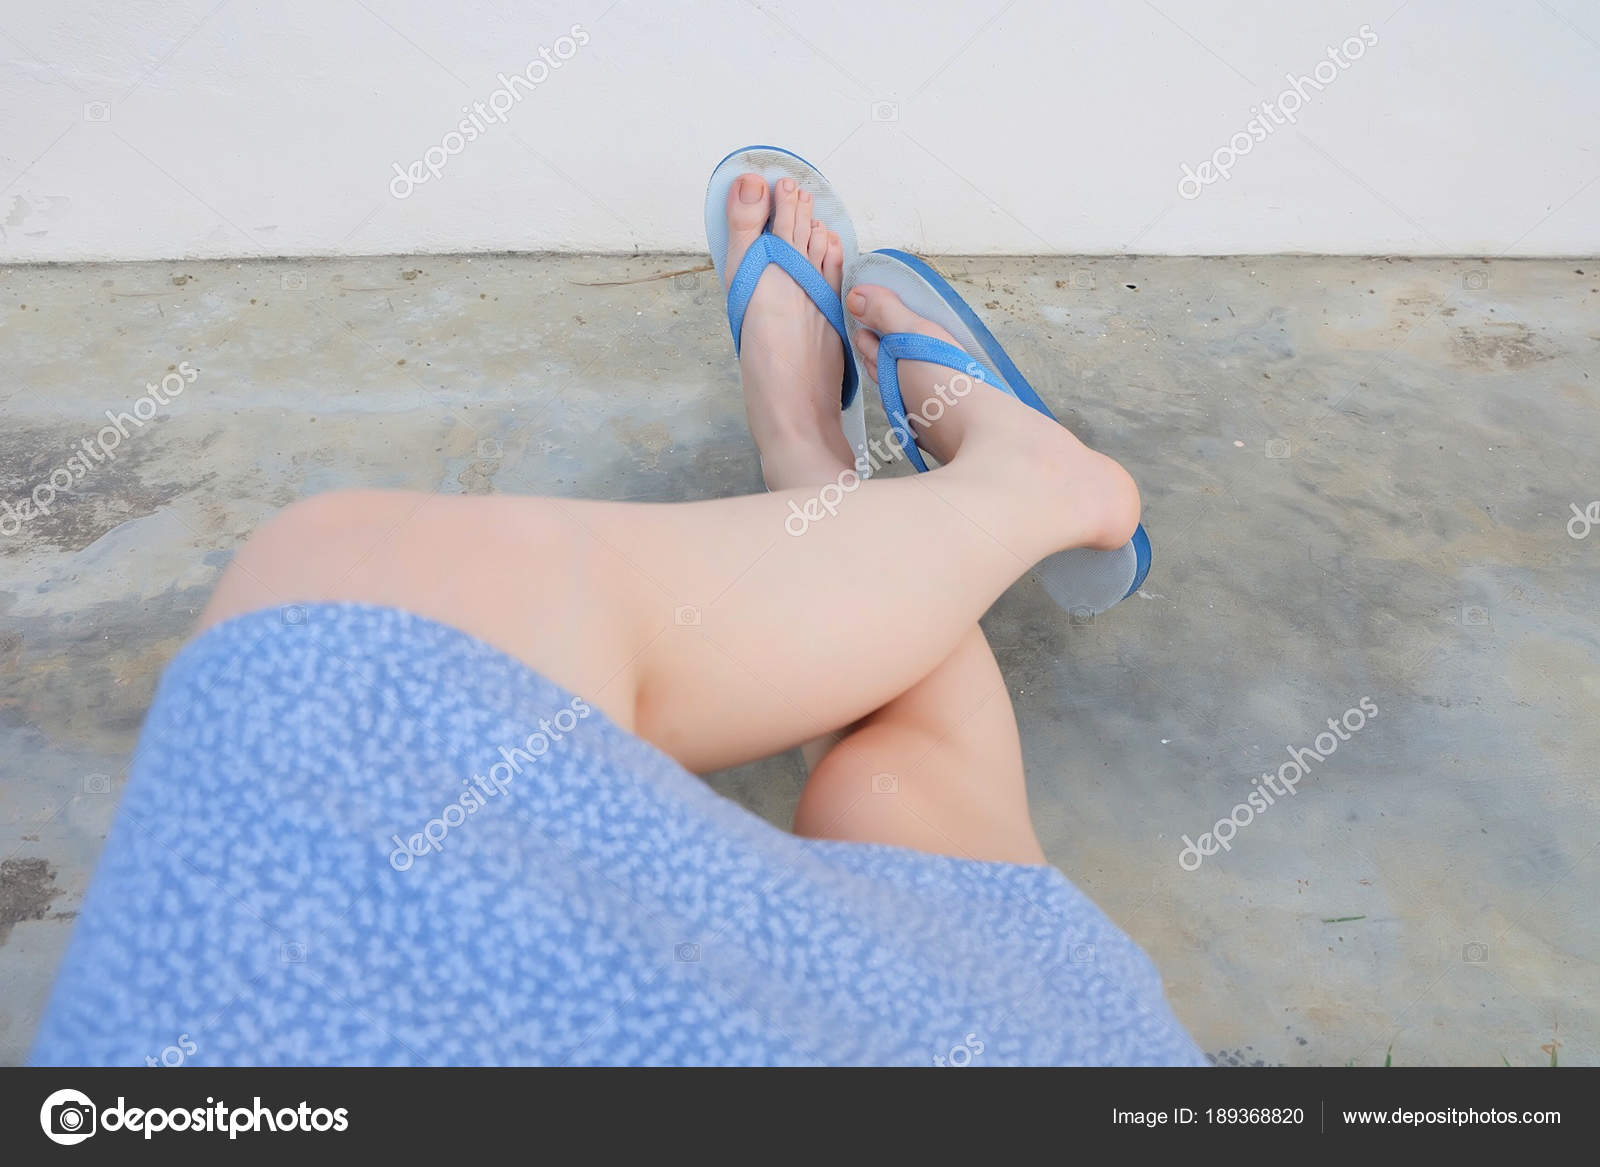 Selfie Blue Shoes Isolated On Concrete Floor For Top View Womans Feet Wearing Dress And Flip Flop Sandal The Cement Background Great